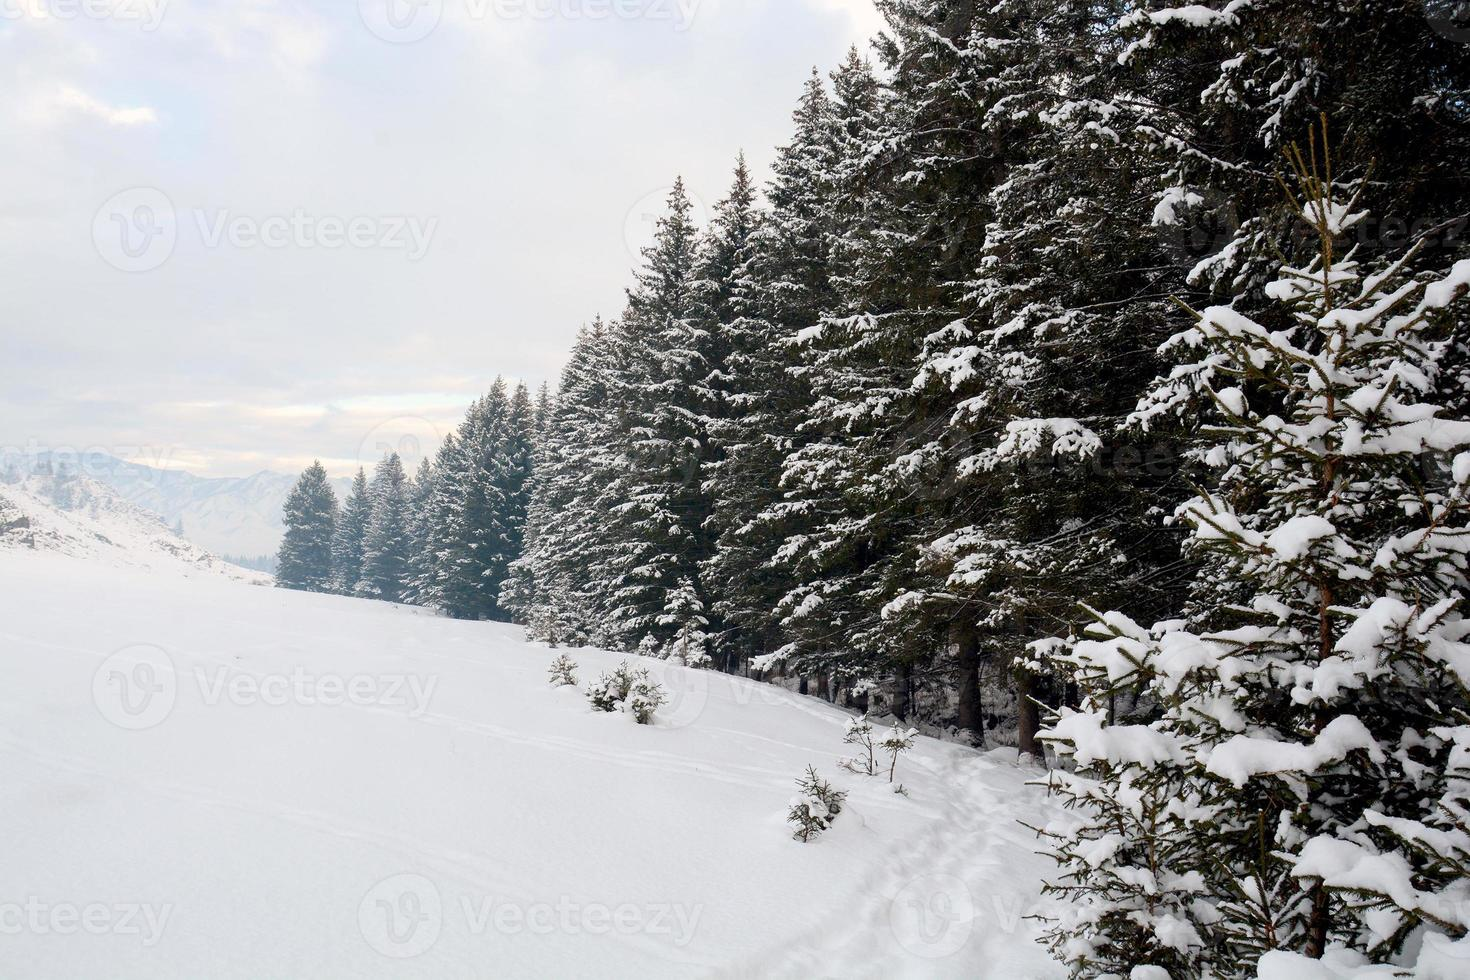 Spruce branches in the snow, winter forest photo